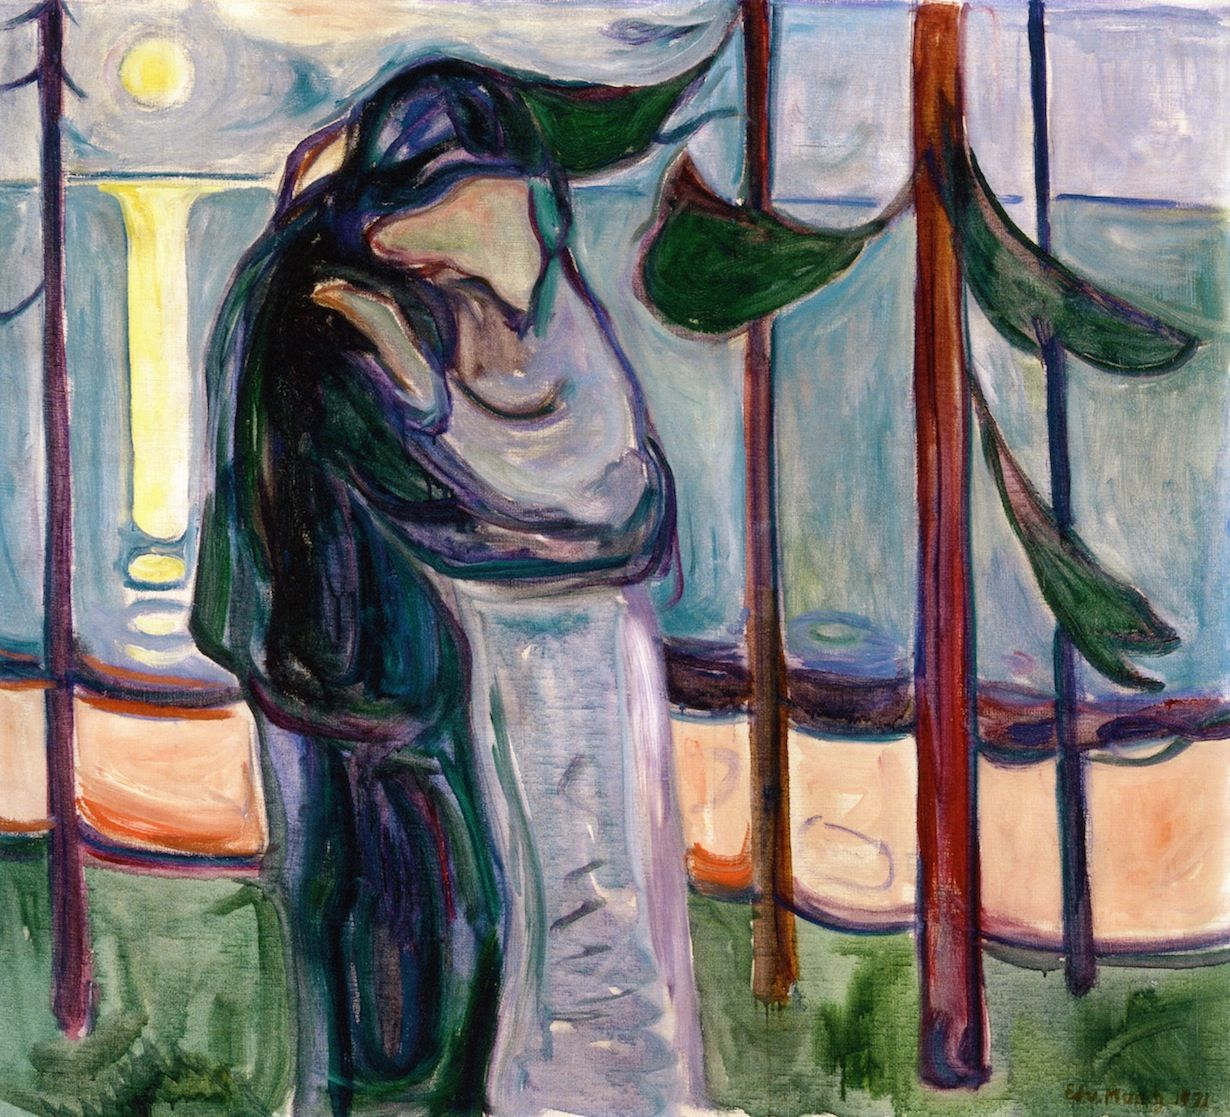 Watercolor art galleries in houston - Edvard Munch Kiss On The Beach 1921 Museum Of Fine Arts Houston